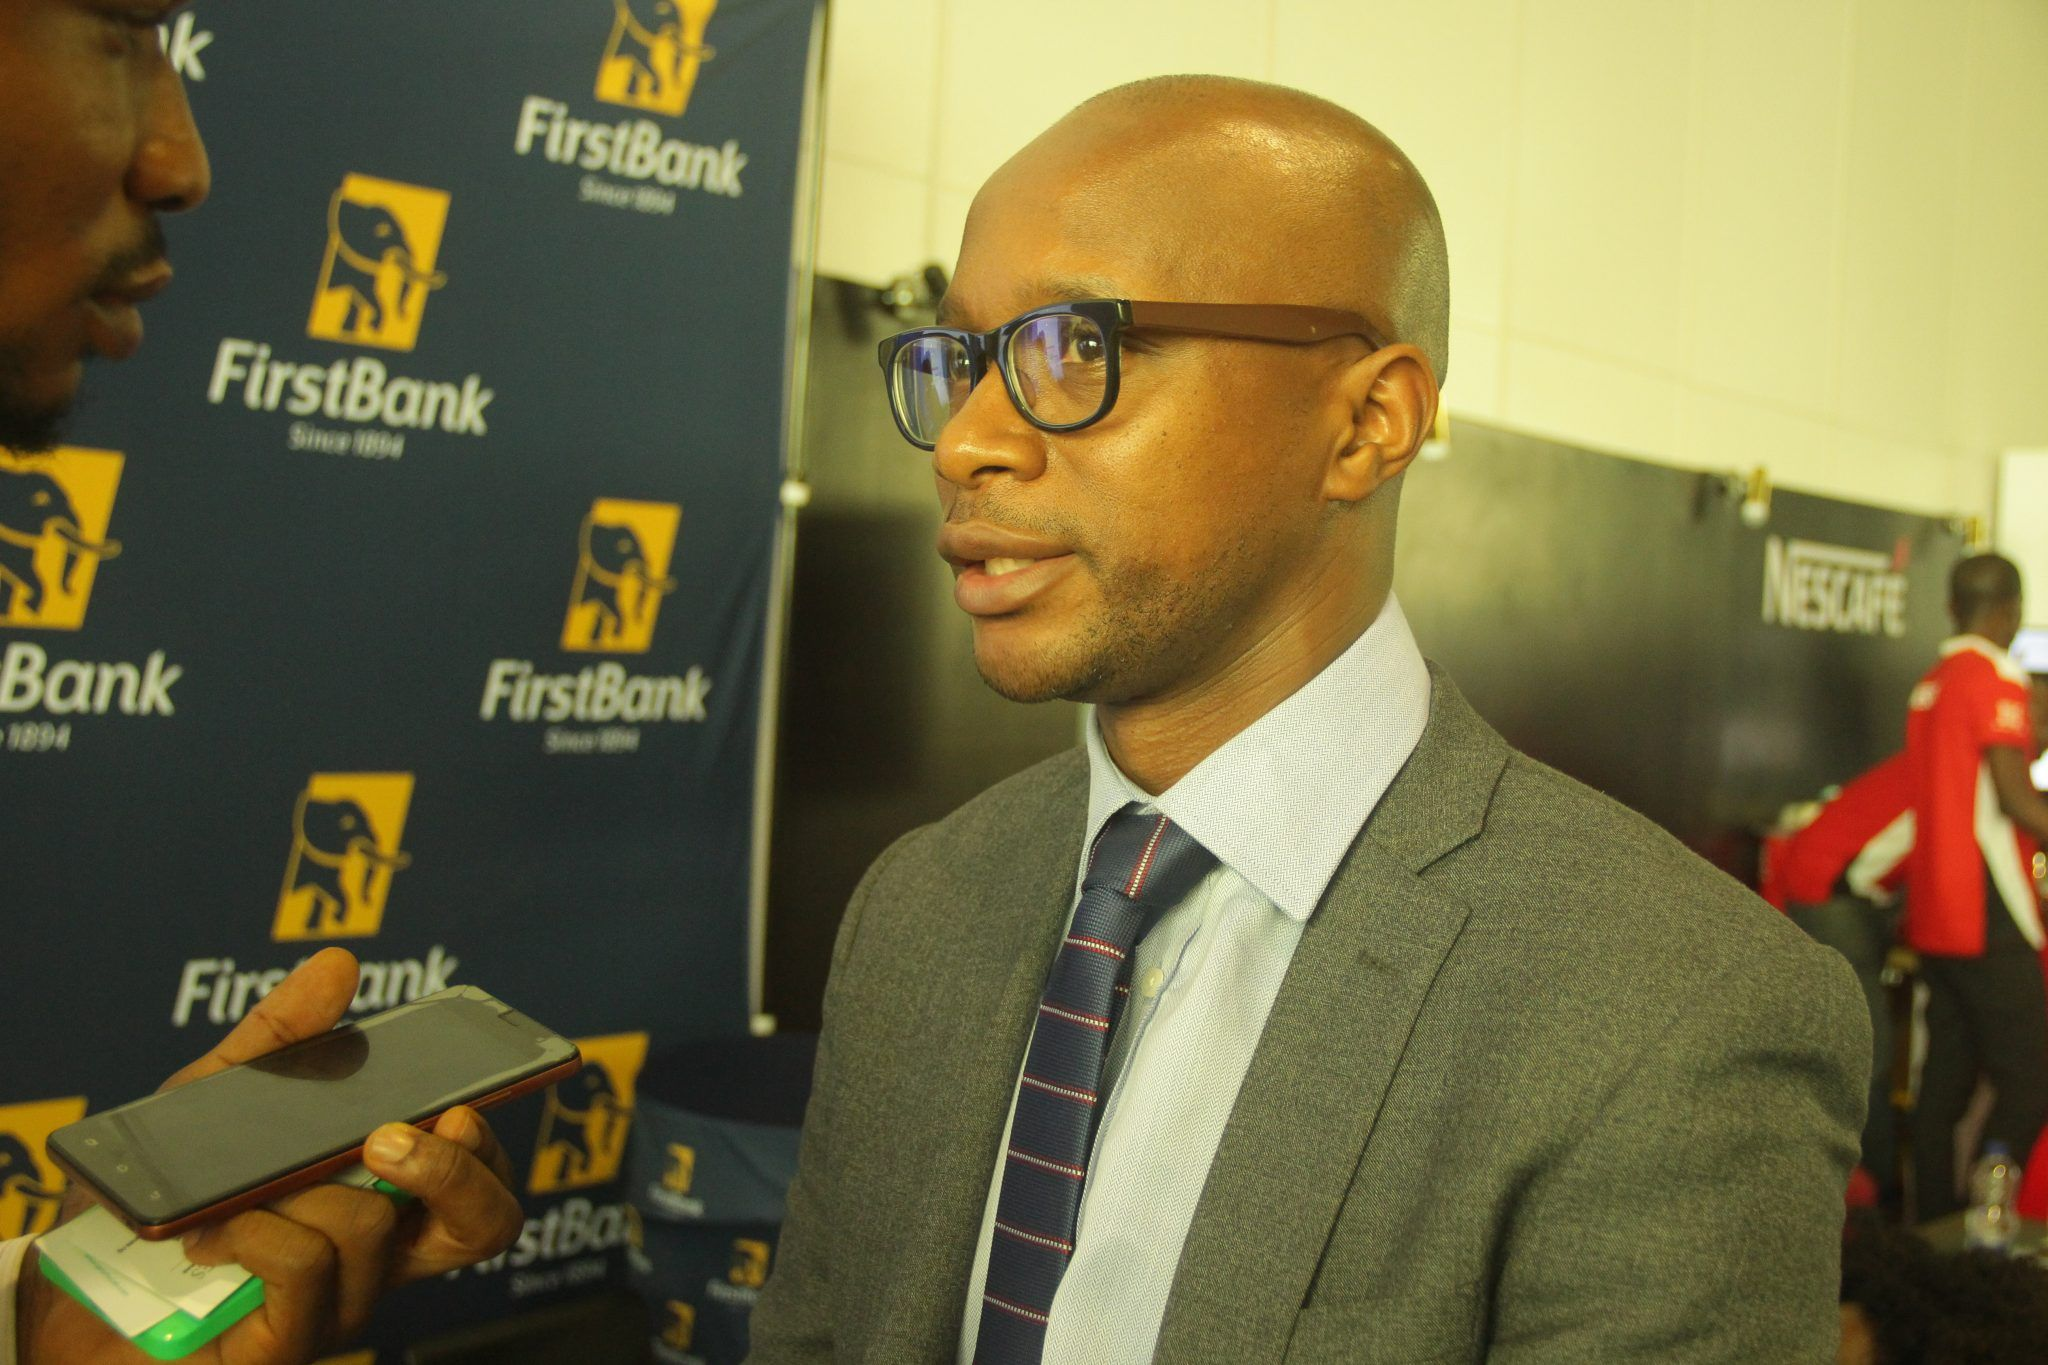 Ijabiyi: First Bank to introduce online account opening 'soon'